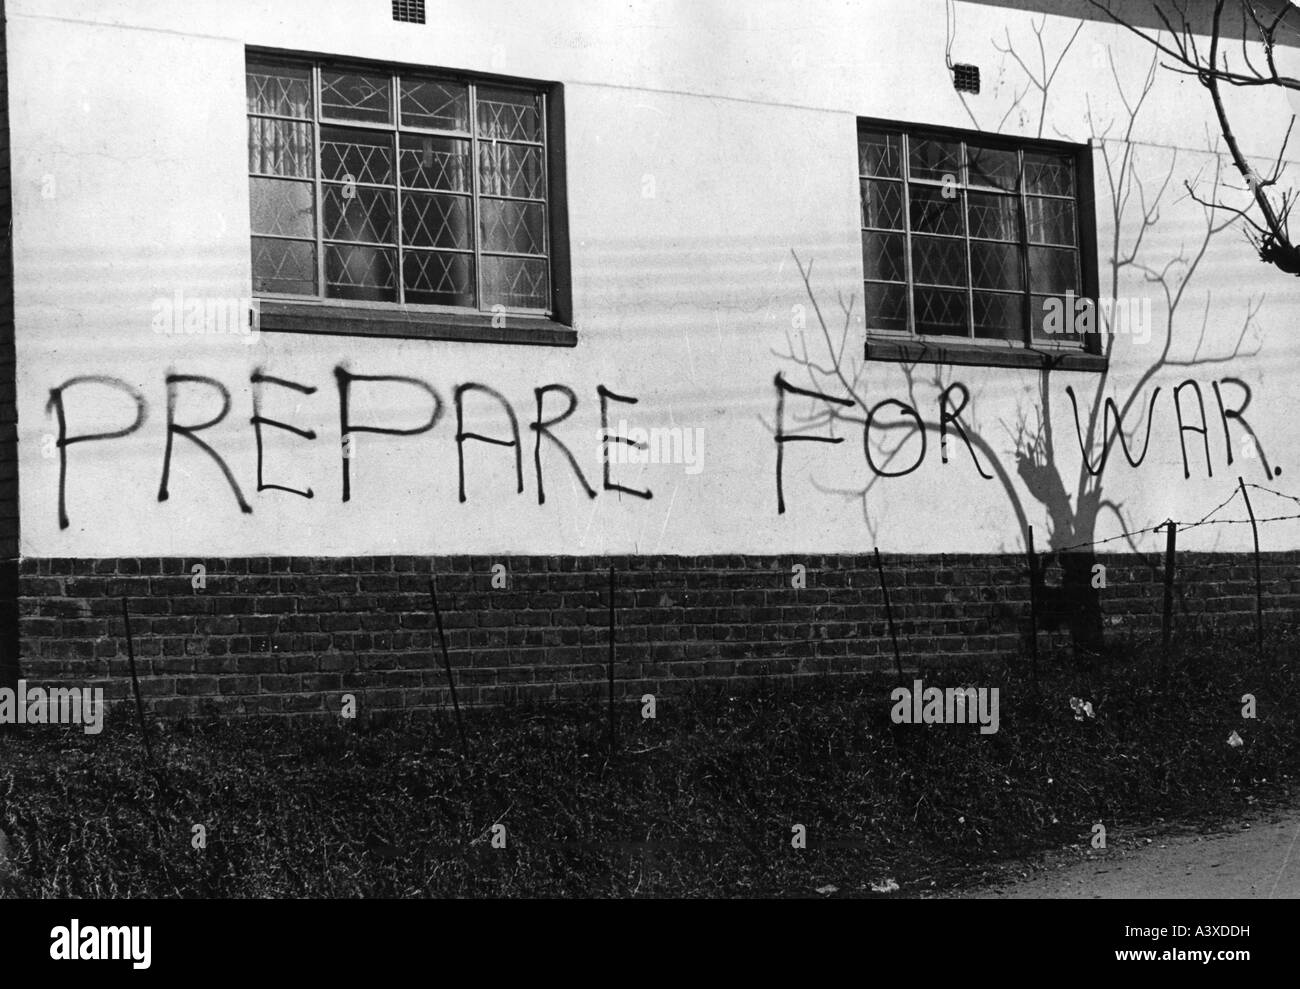 geography/travel, South Africa, politics, appeal 'Prepare for war!' on the wall of a house, Johannesburg, - Stock Image